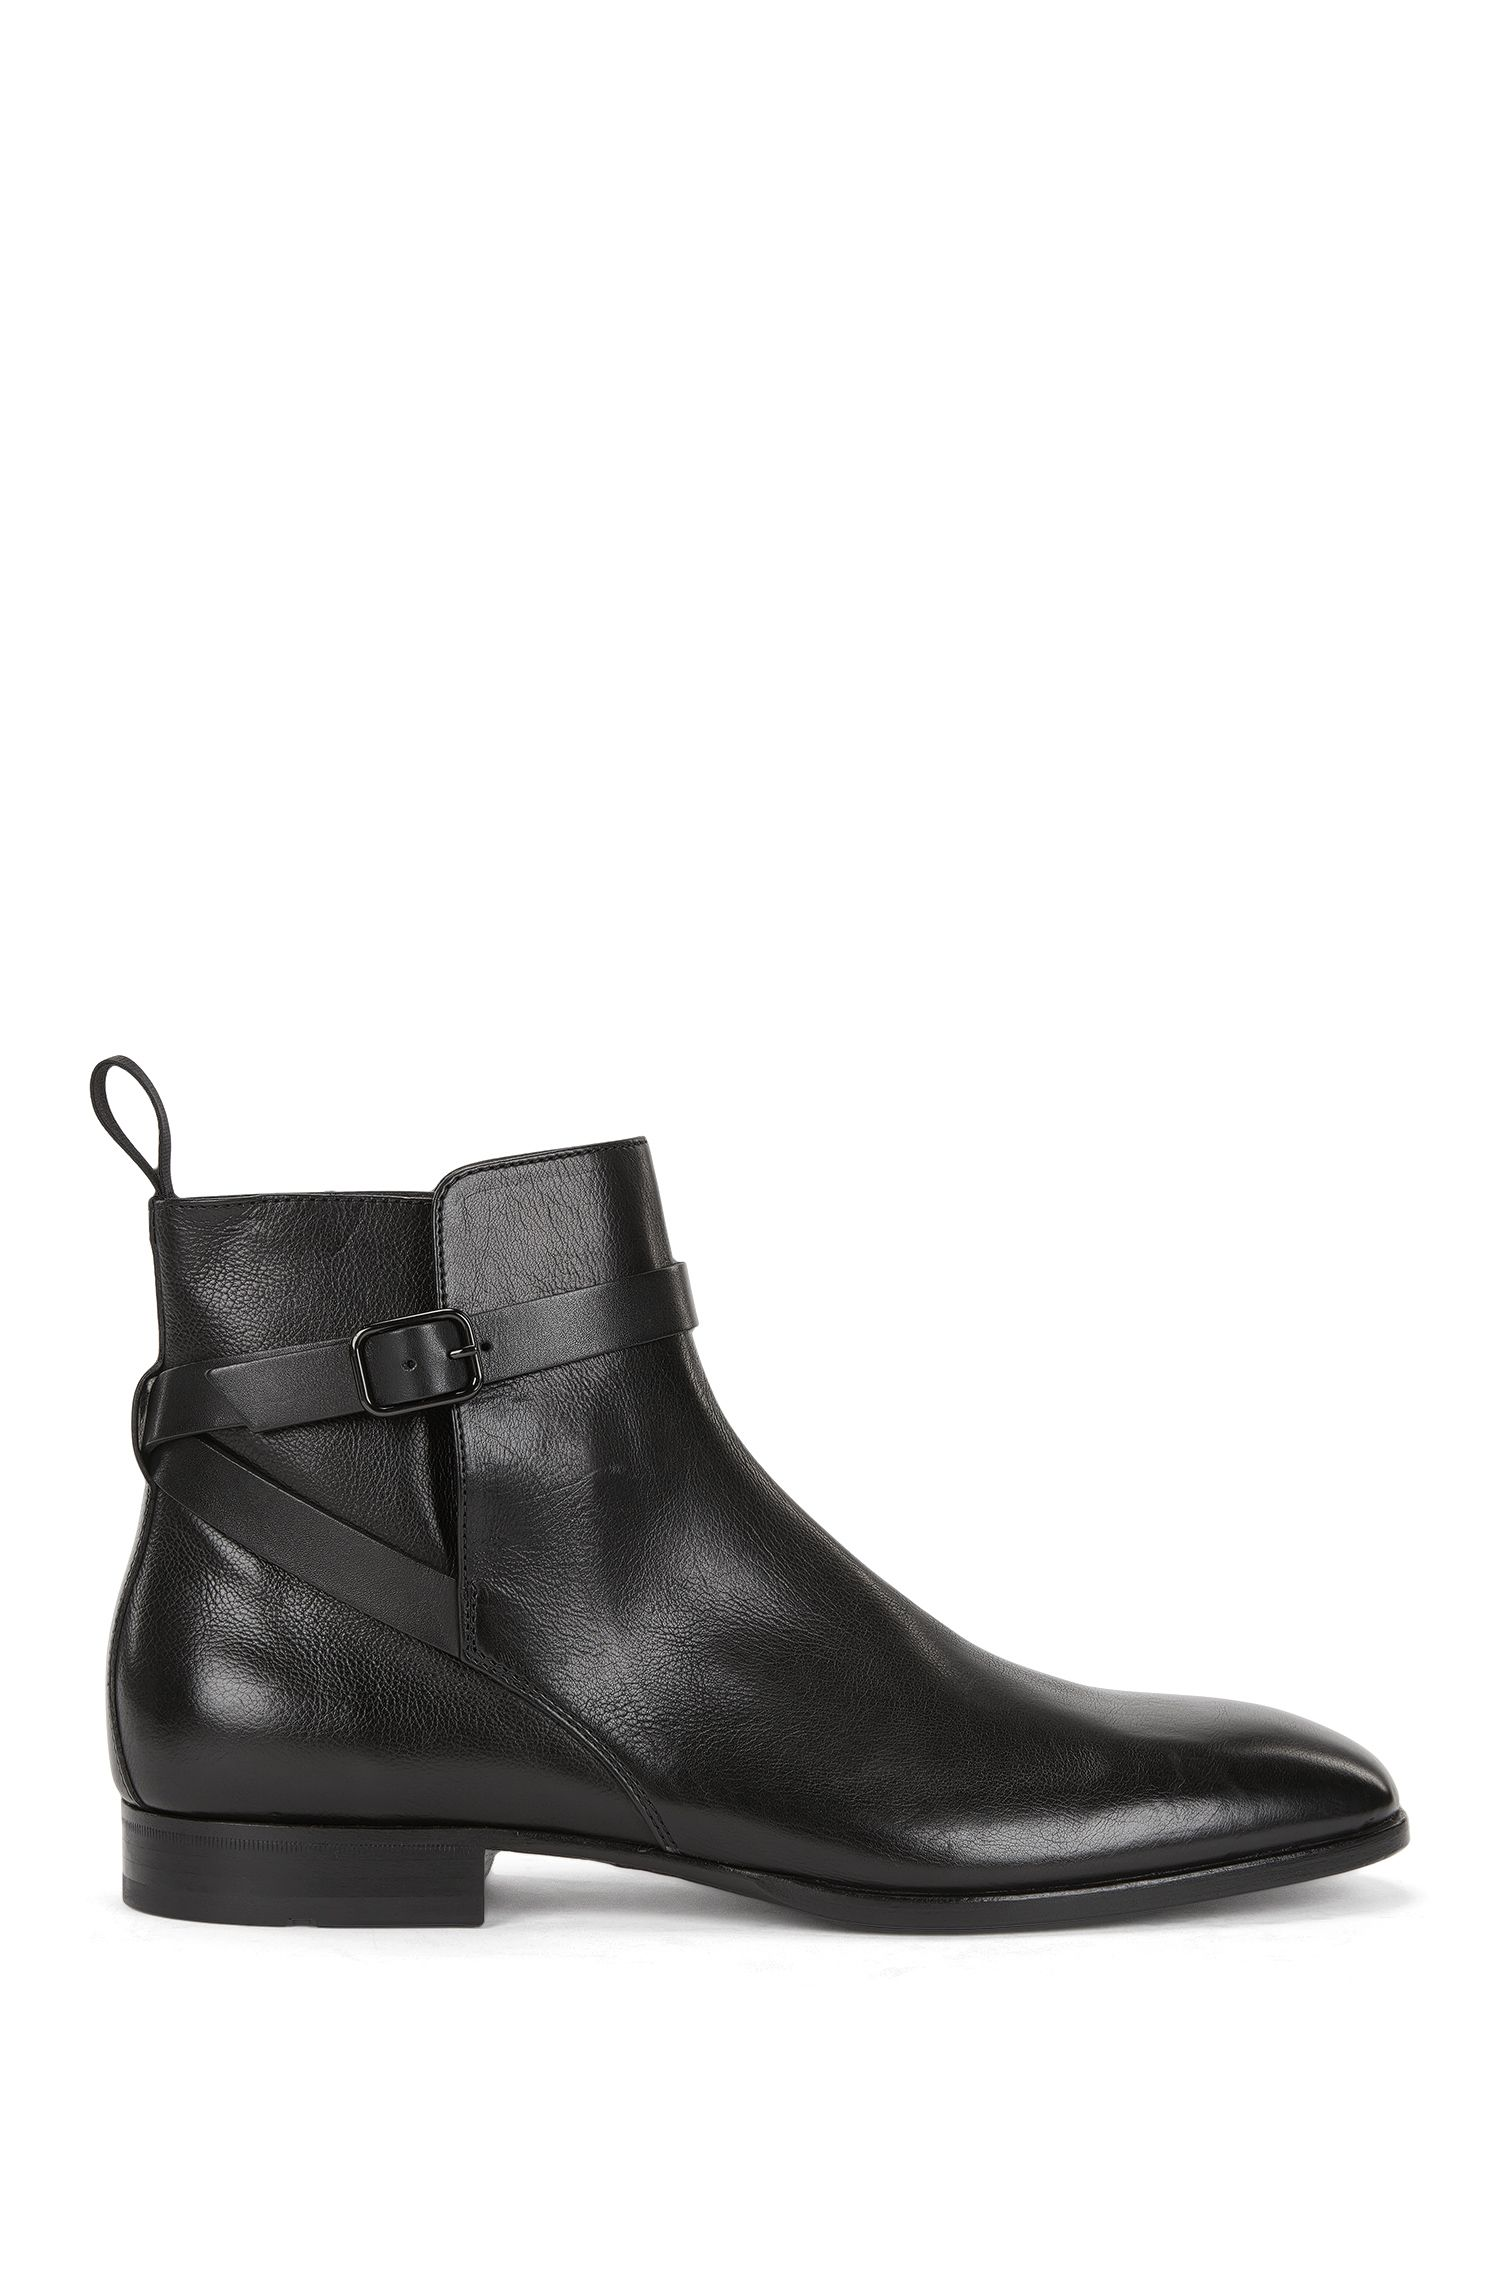 Grained leather Chelsea boots with buckled ankle strap